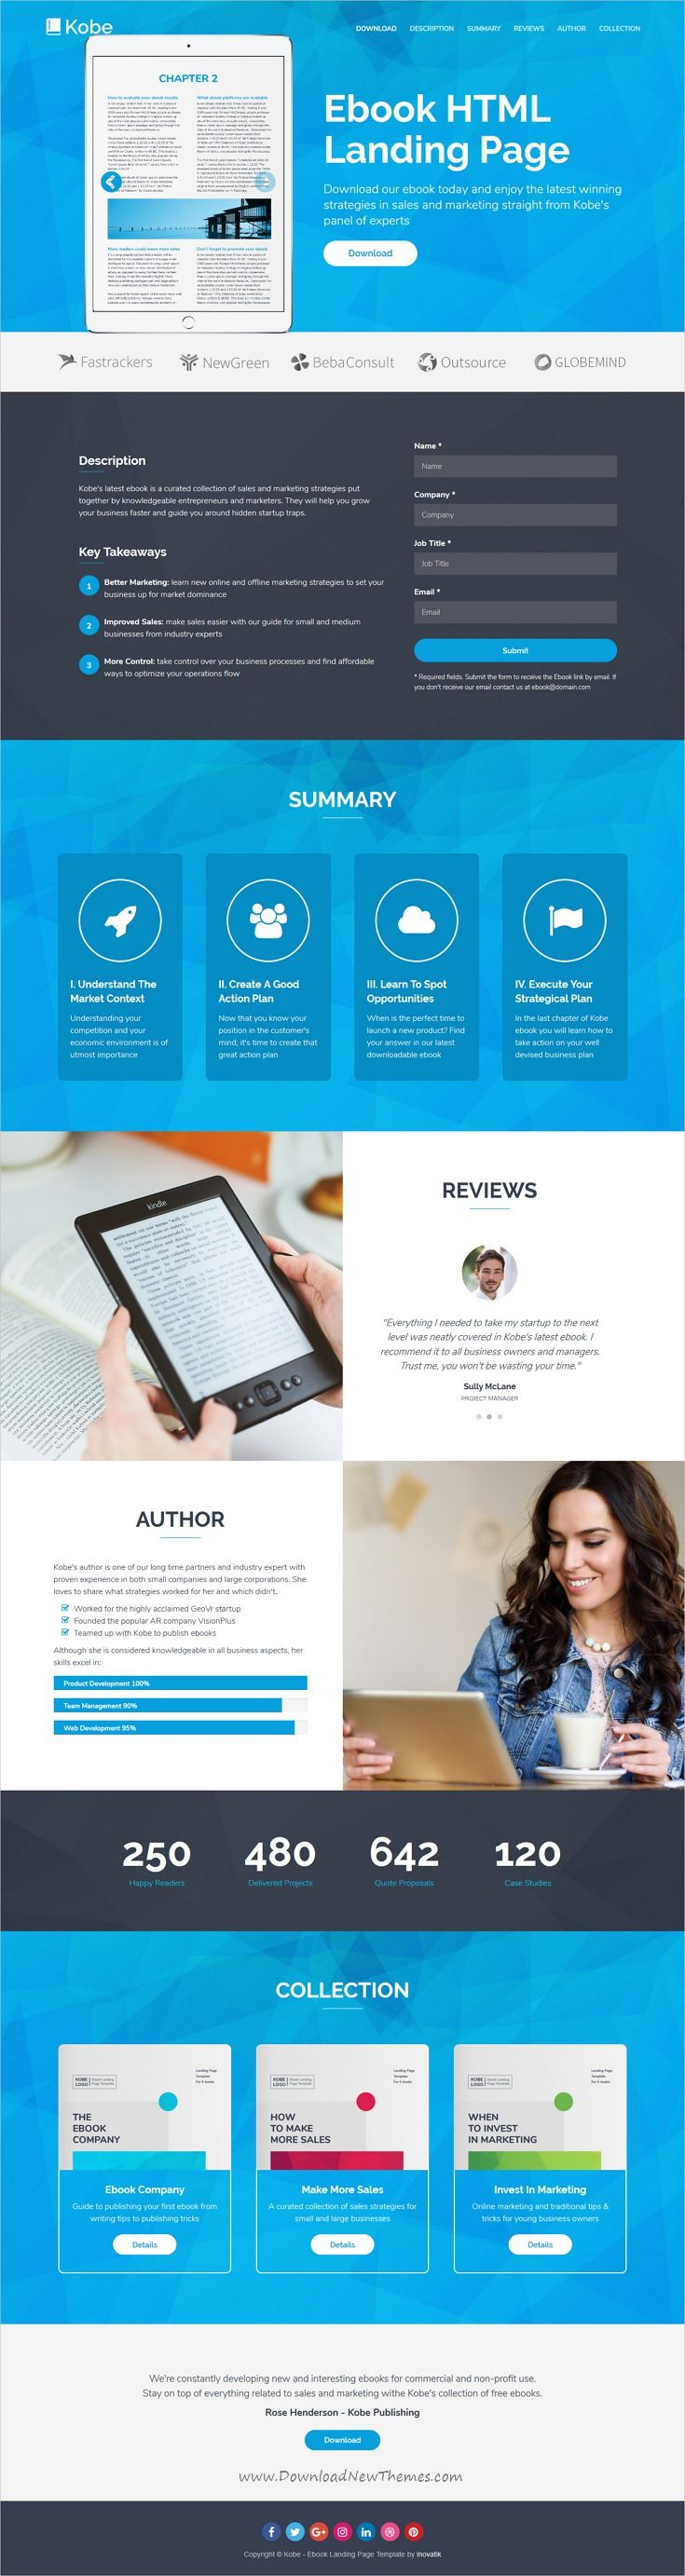 Kobe is clean and modern design responsive #HTML5 template for ebook #landingpage website with 6 homepage layouts with working download form download now..